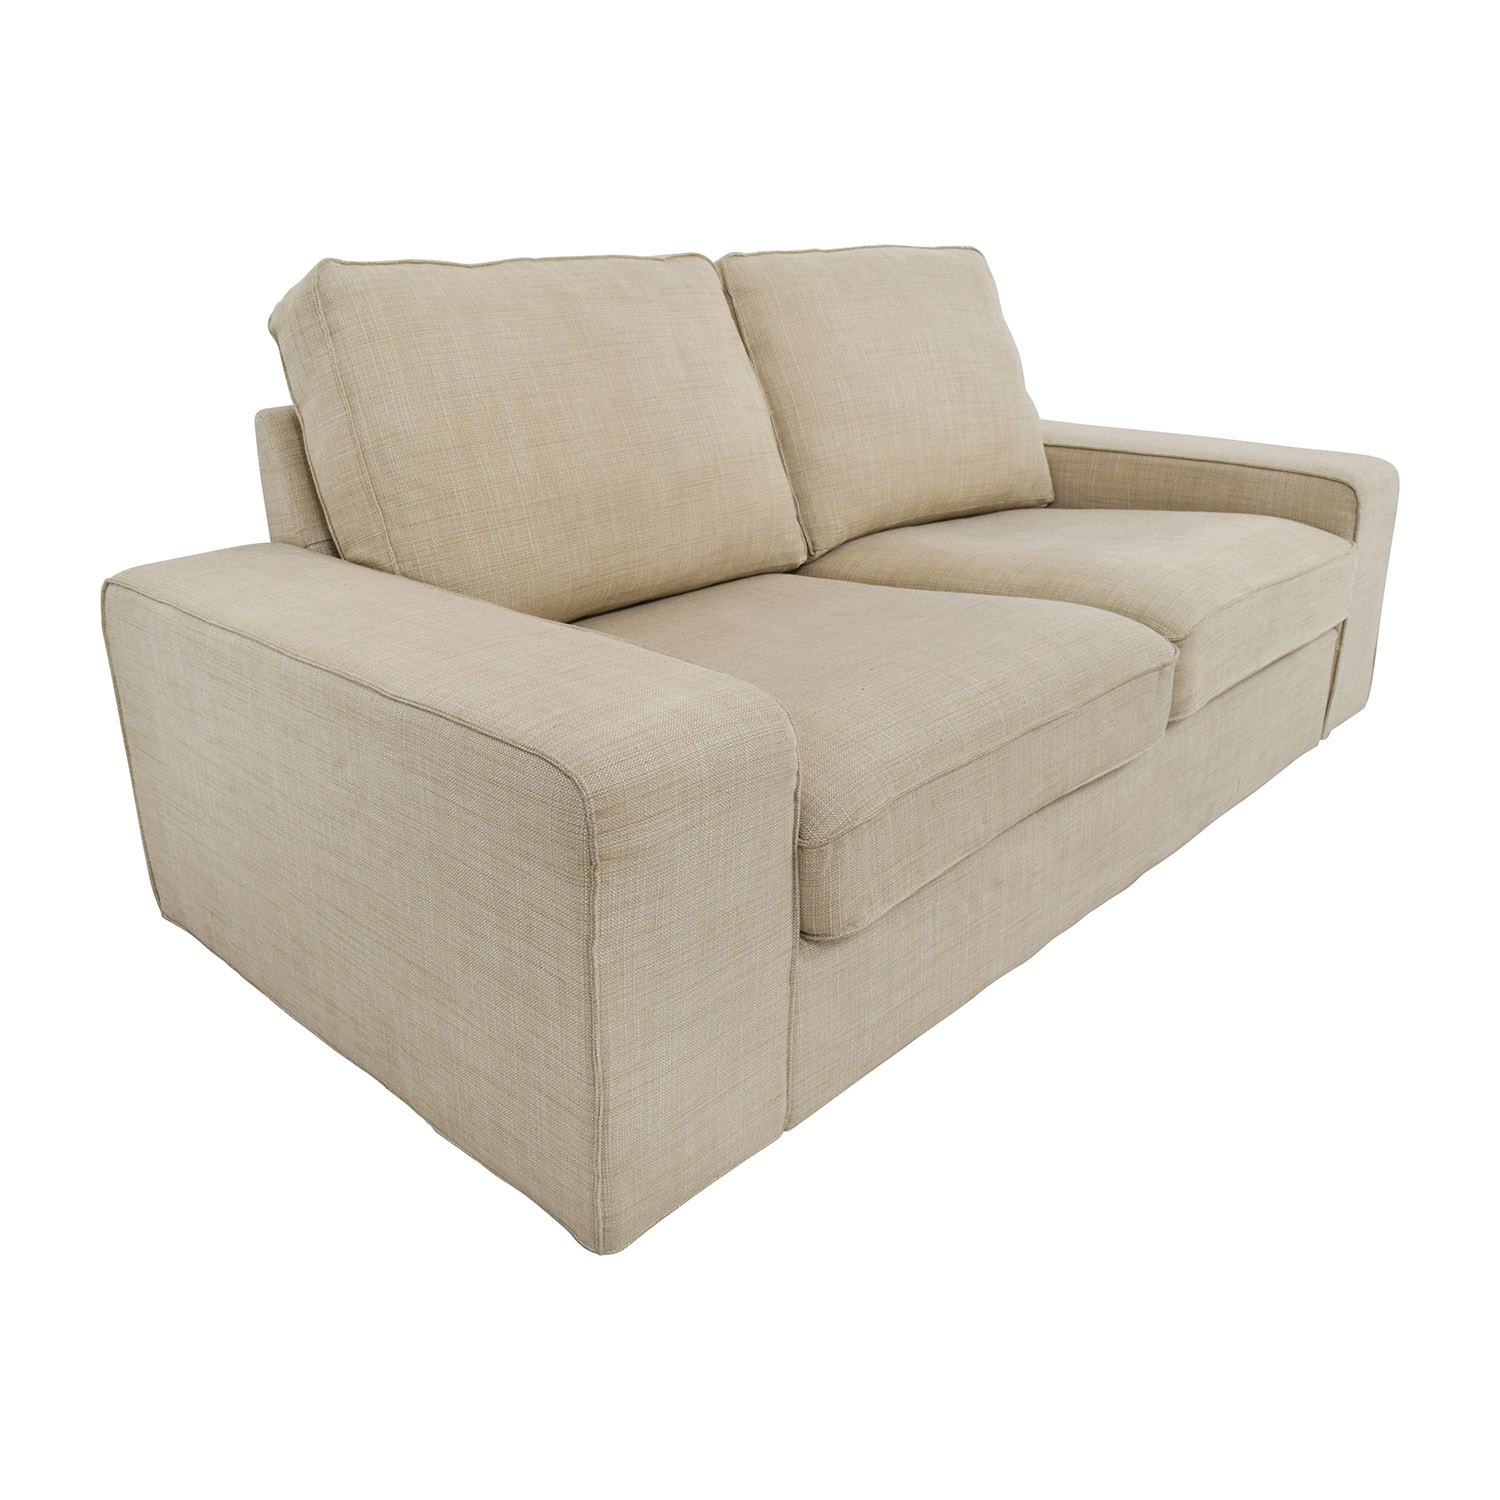 68 off ikea light beige fabric loveseat sofas Fabric sofas and loveseats